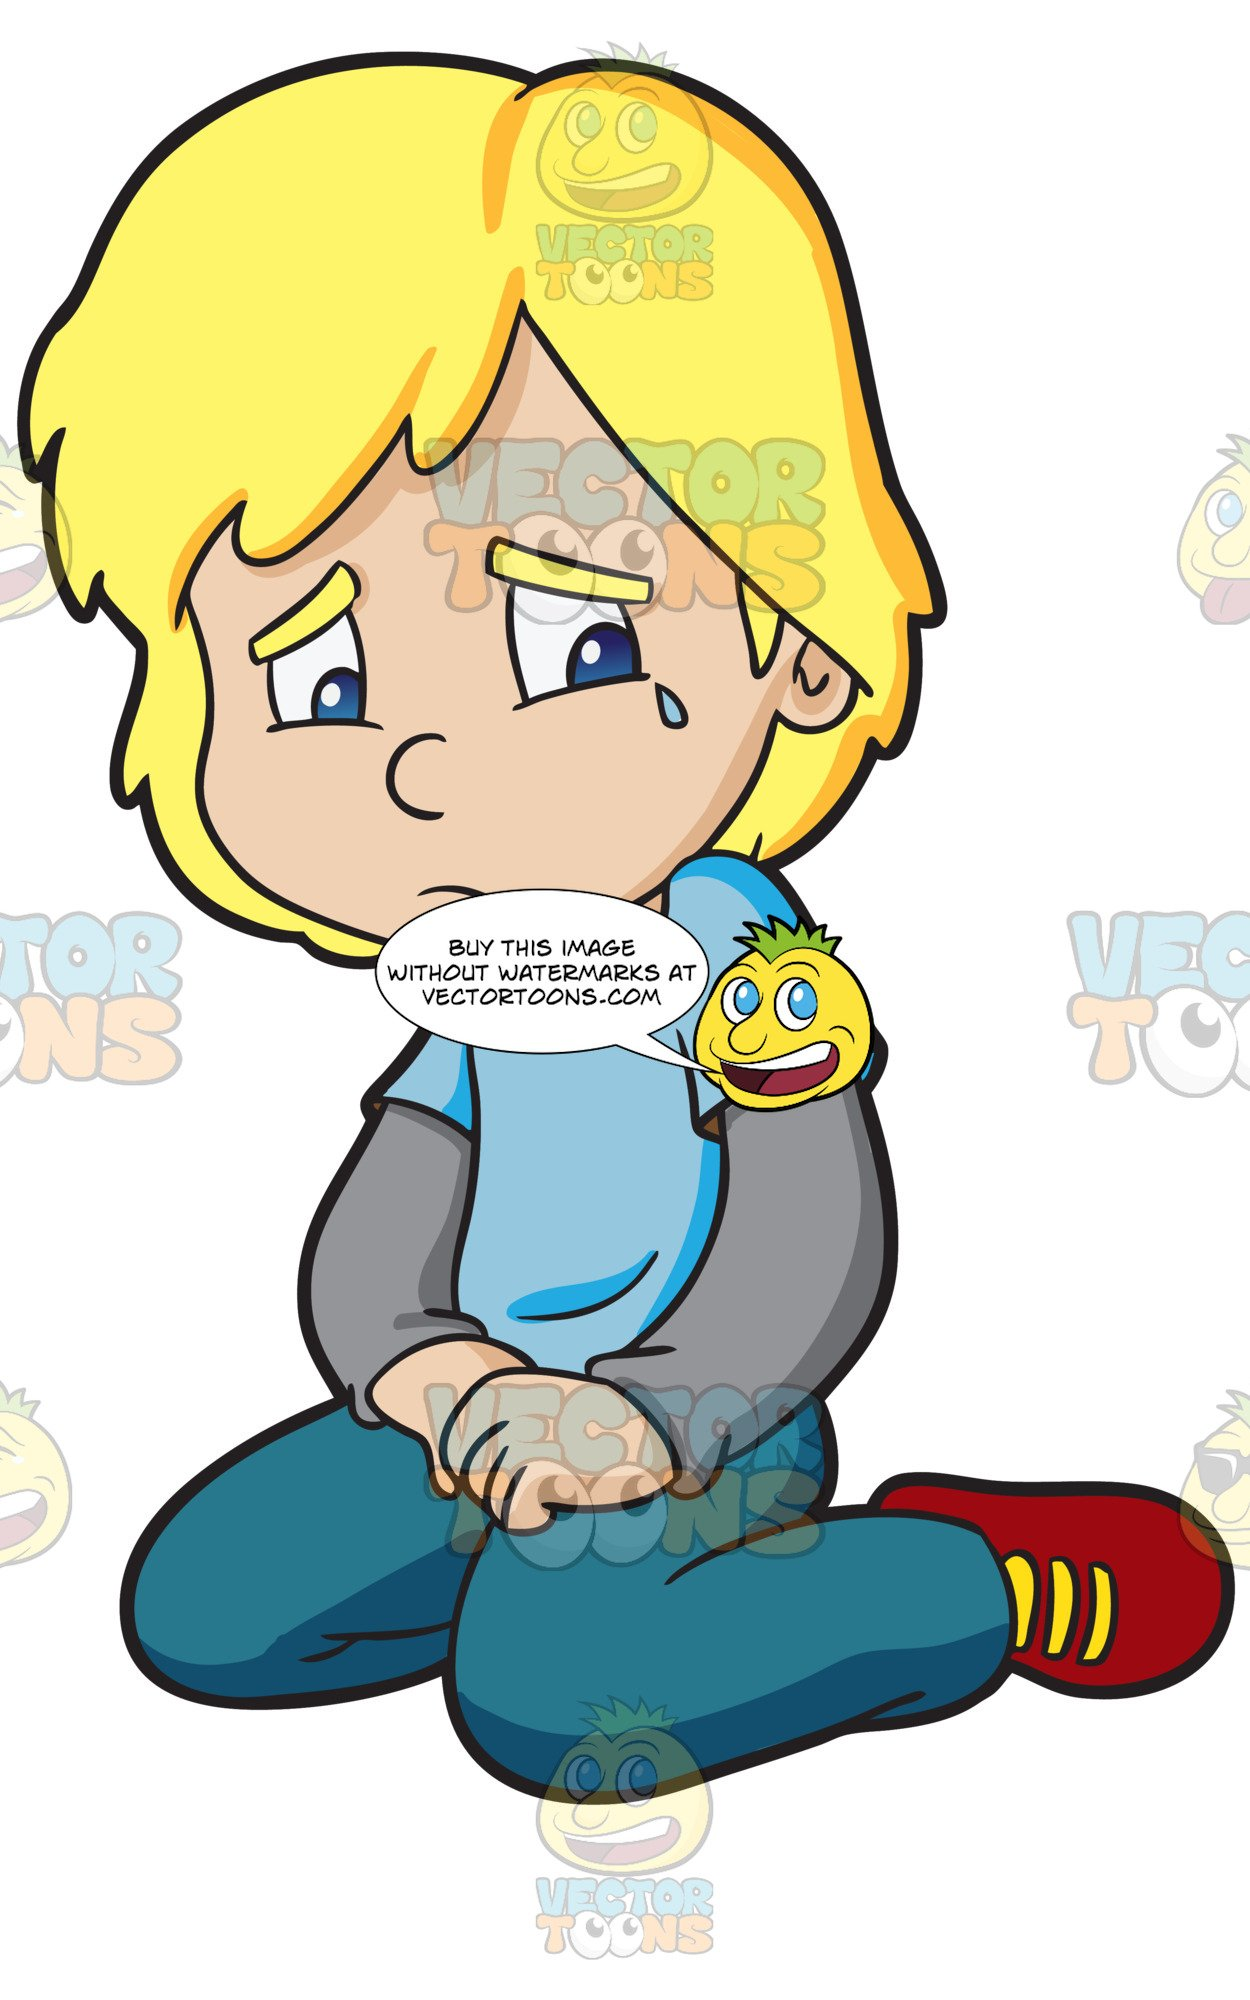 Crying clipart cry kid, Crying cry kid Transparent FREE for.